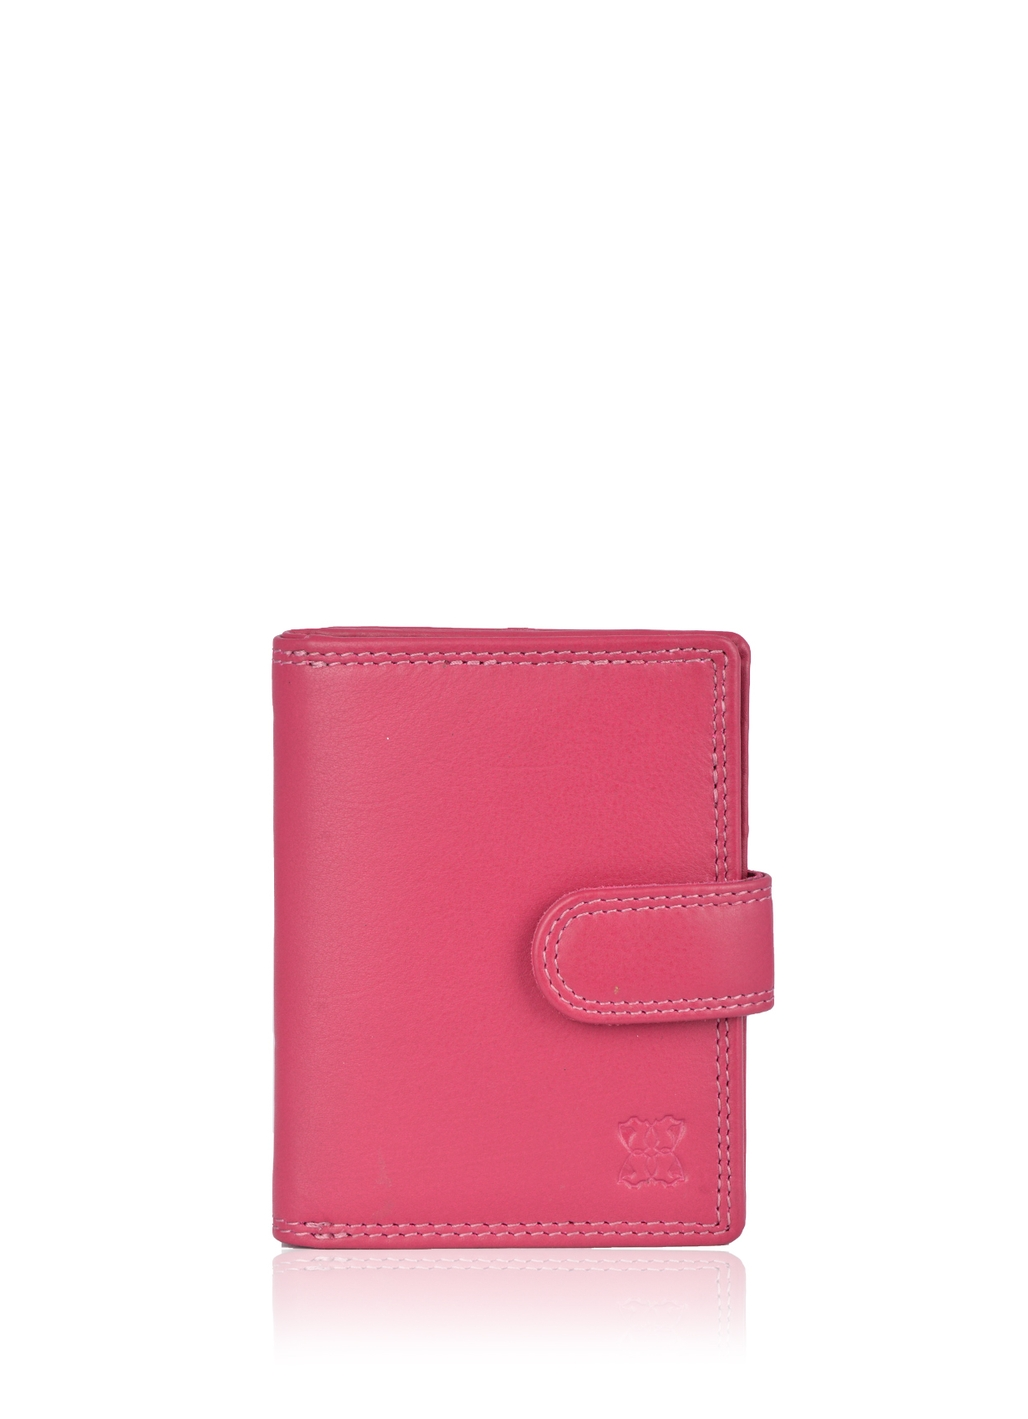 11.5cm Leather Tab Purse in Cranberry Pink